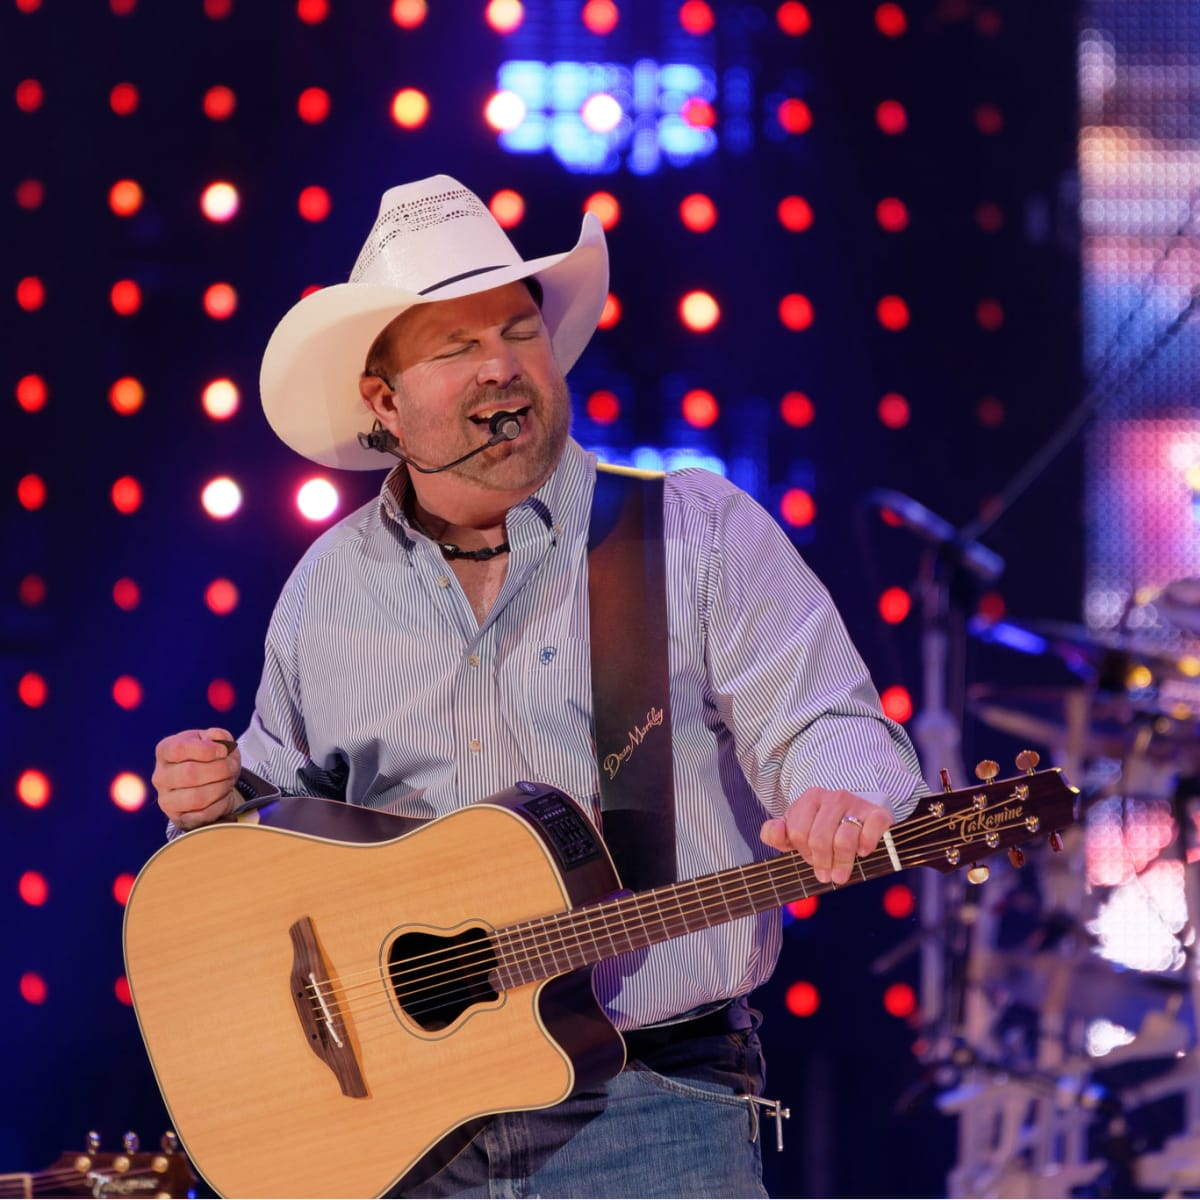 Garth Brooks opening night RodeoHouston eyes closed